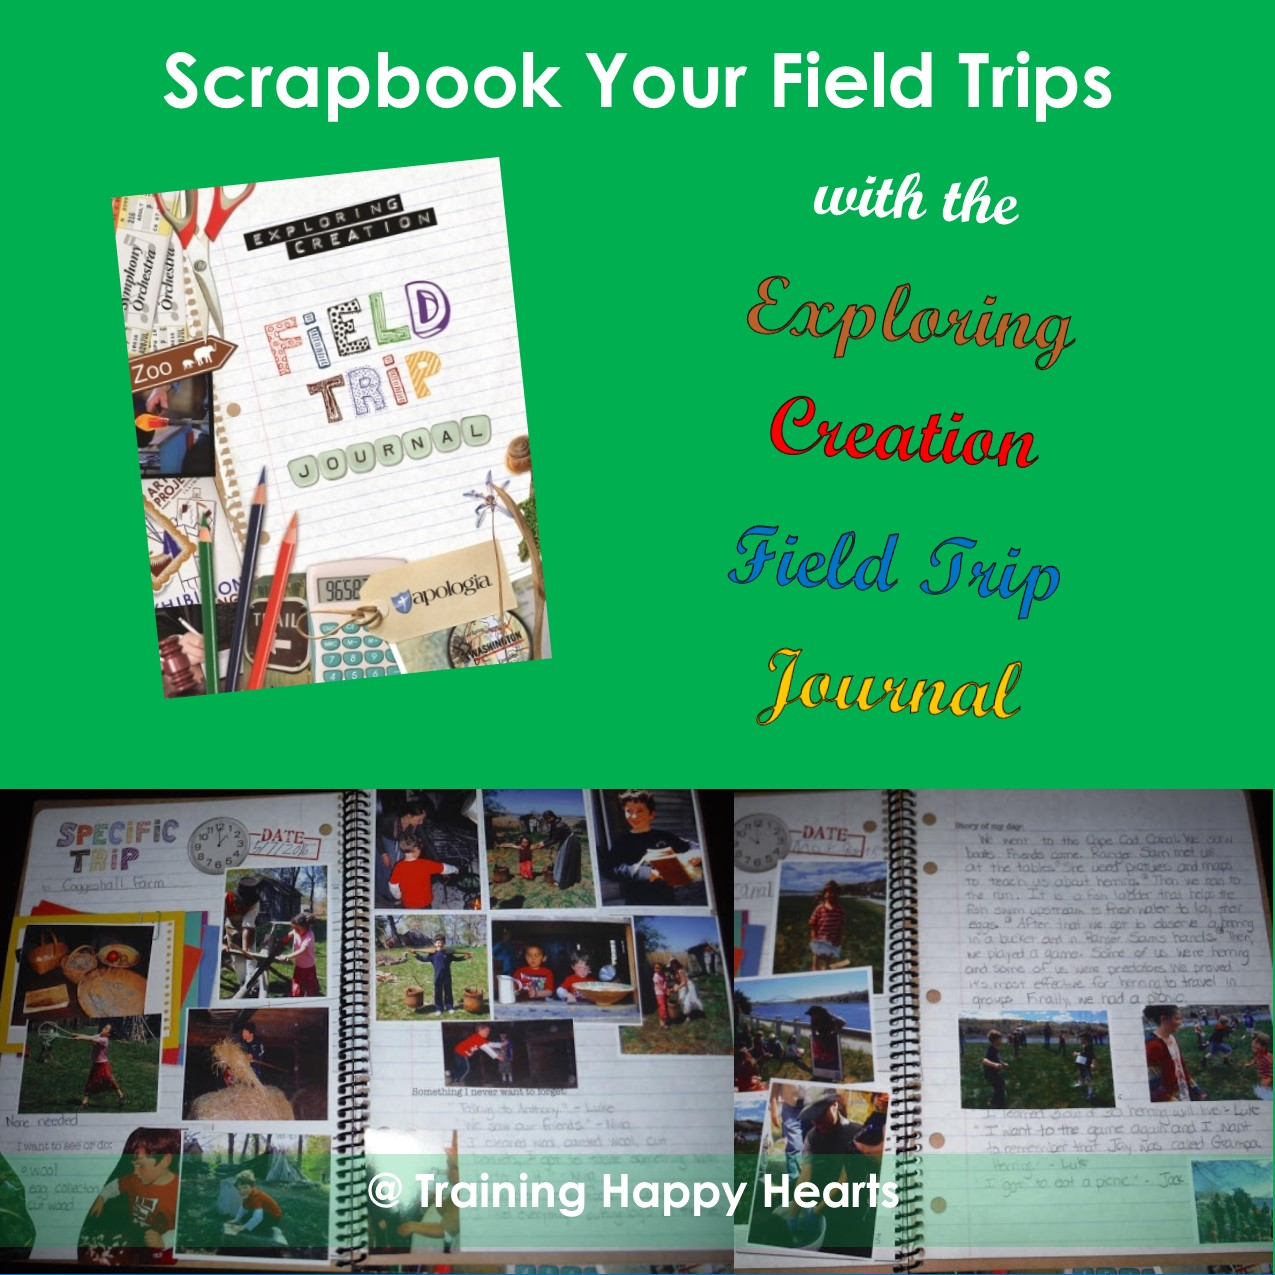 http://traininghappyhearts.blogspot.com/2015/06/scrapbook-your-field-trips-exploring.html